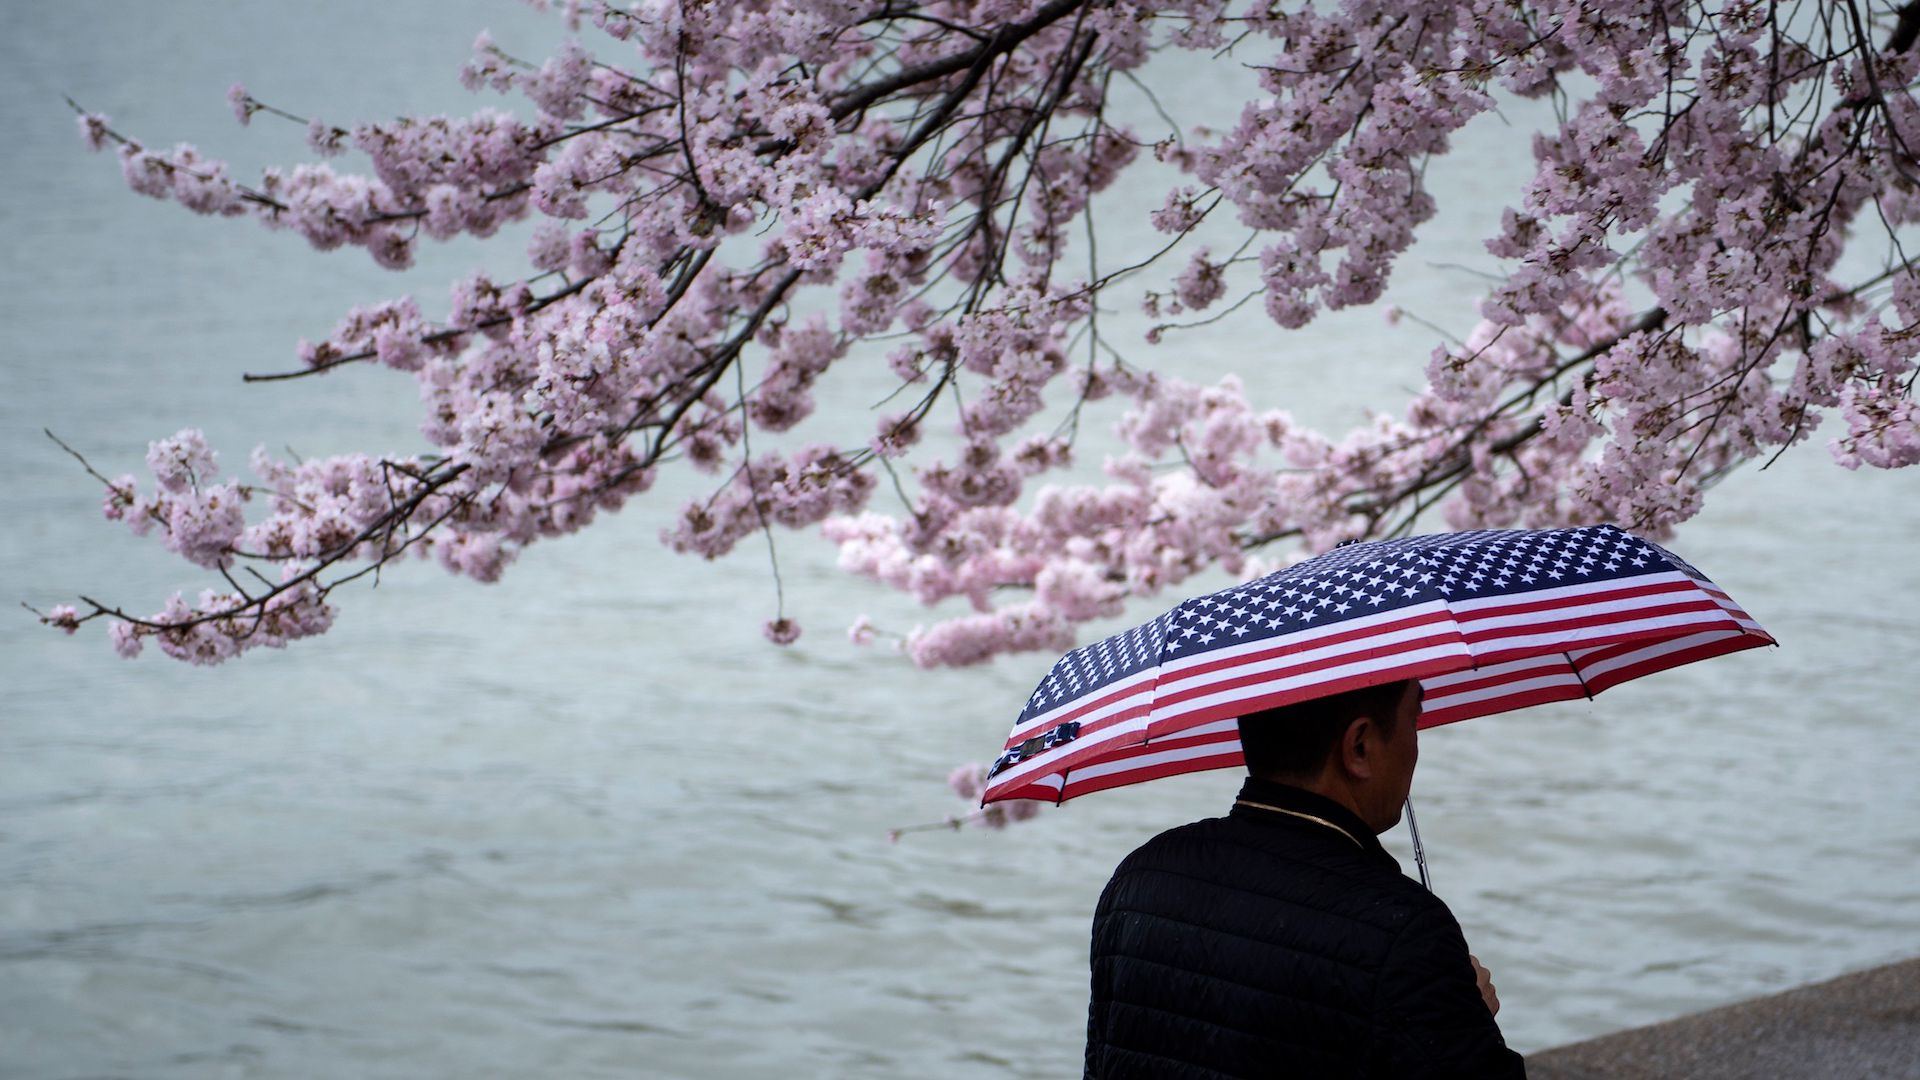 A man walking along the Tidal Basin in Washington with an umbrella